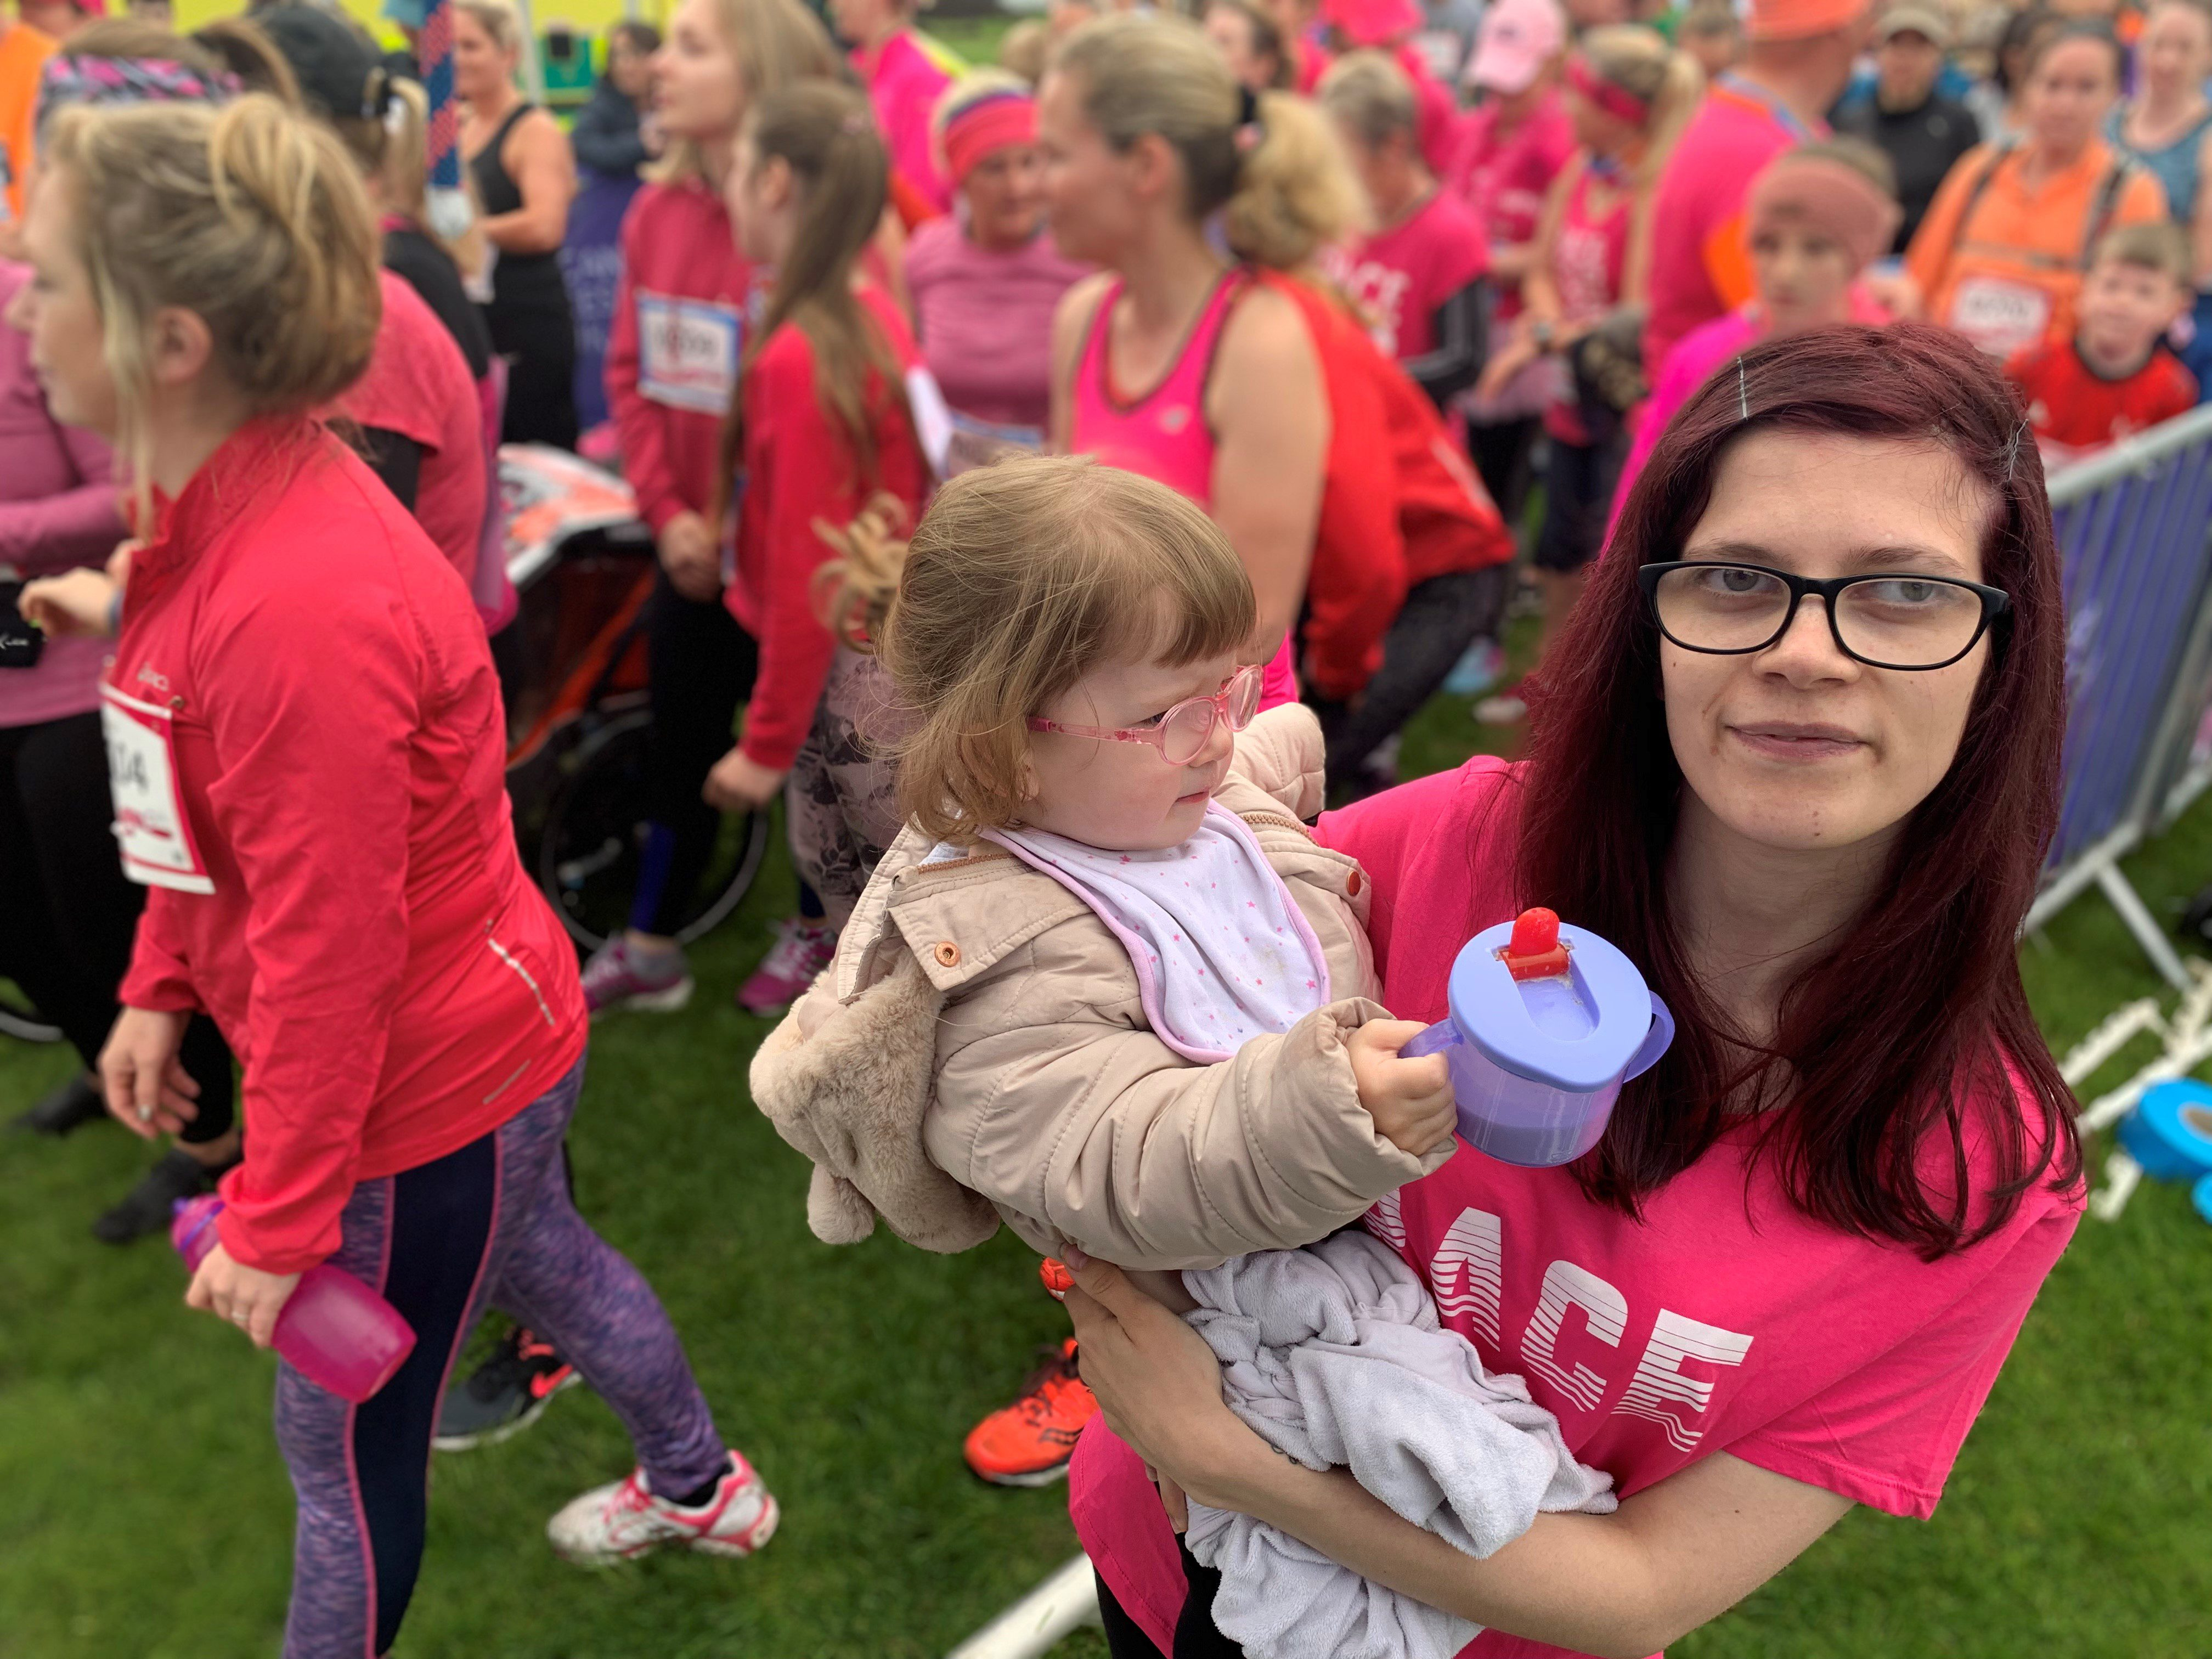 Race for Life VIP starter Shannon Murphy at the start line of Inverness with daughter Sophia